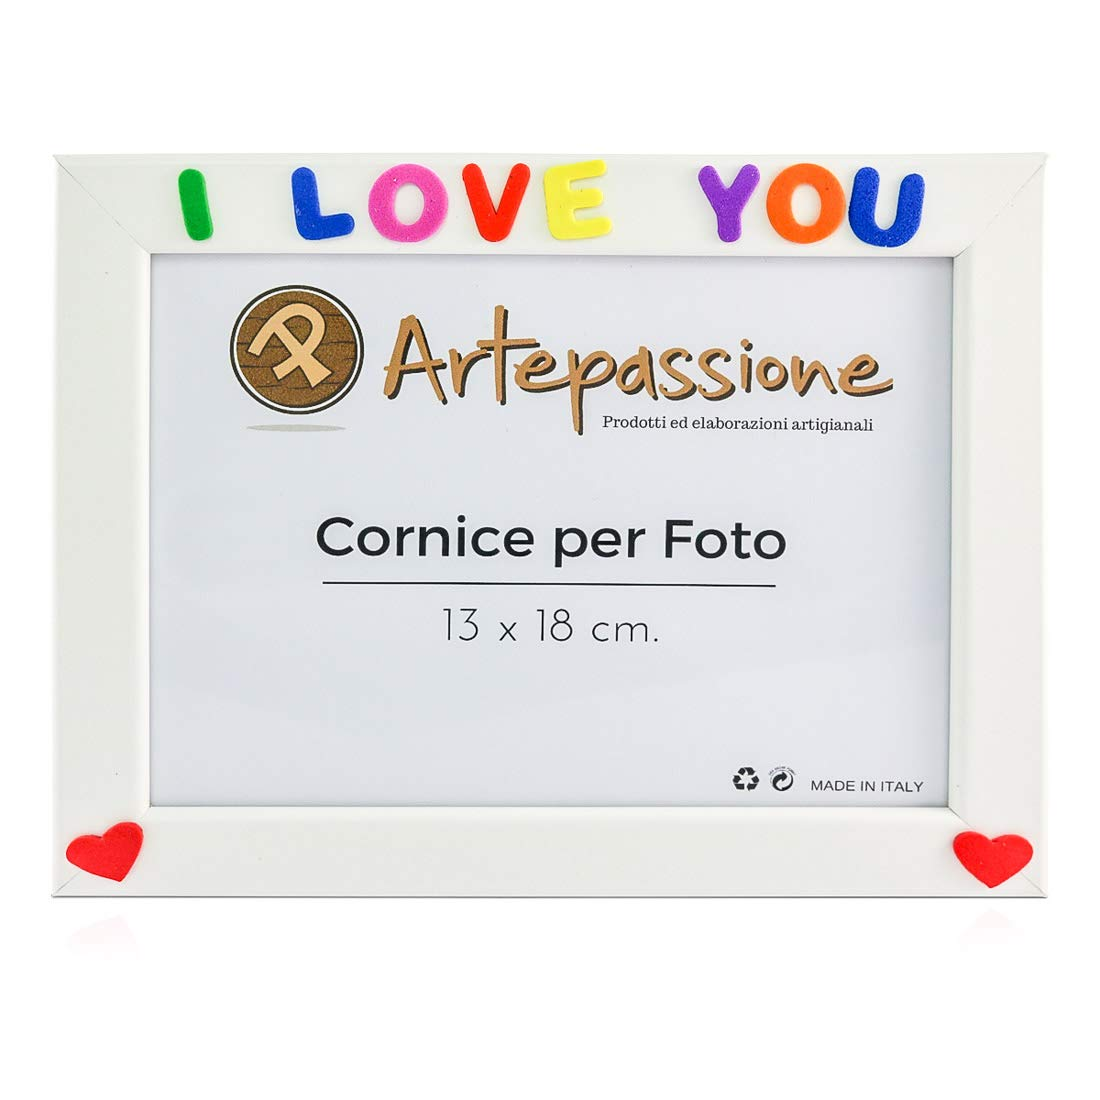 13 x 18 cm Artepassion Wooden Photo Frames with I Love You and Decorated with Hearts White